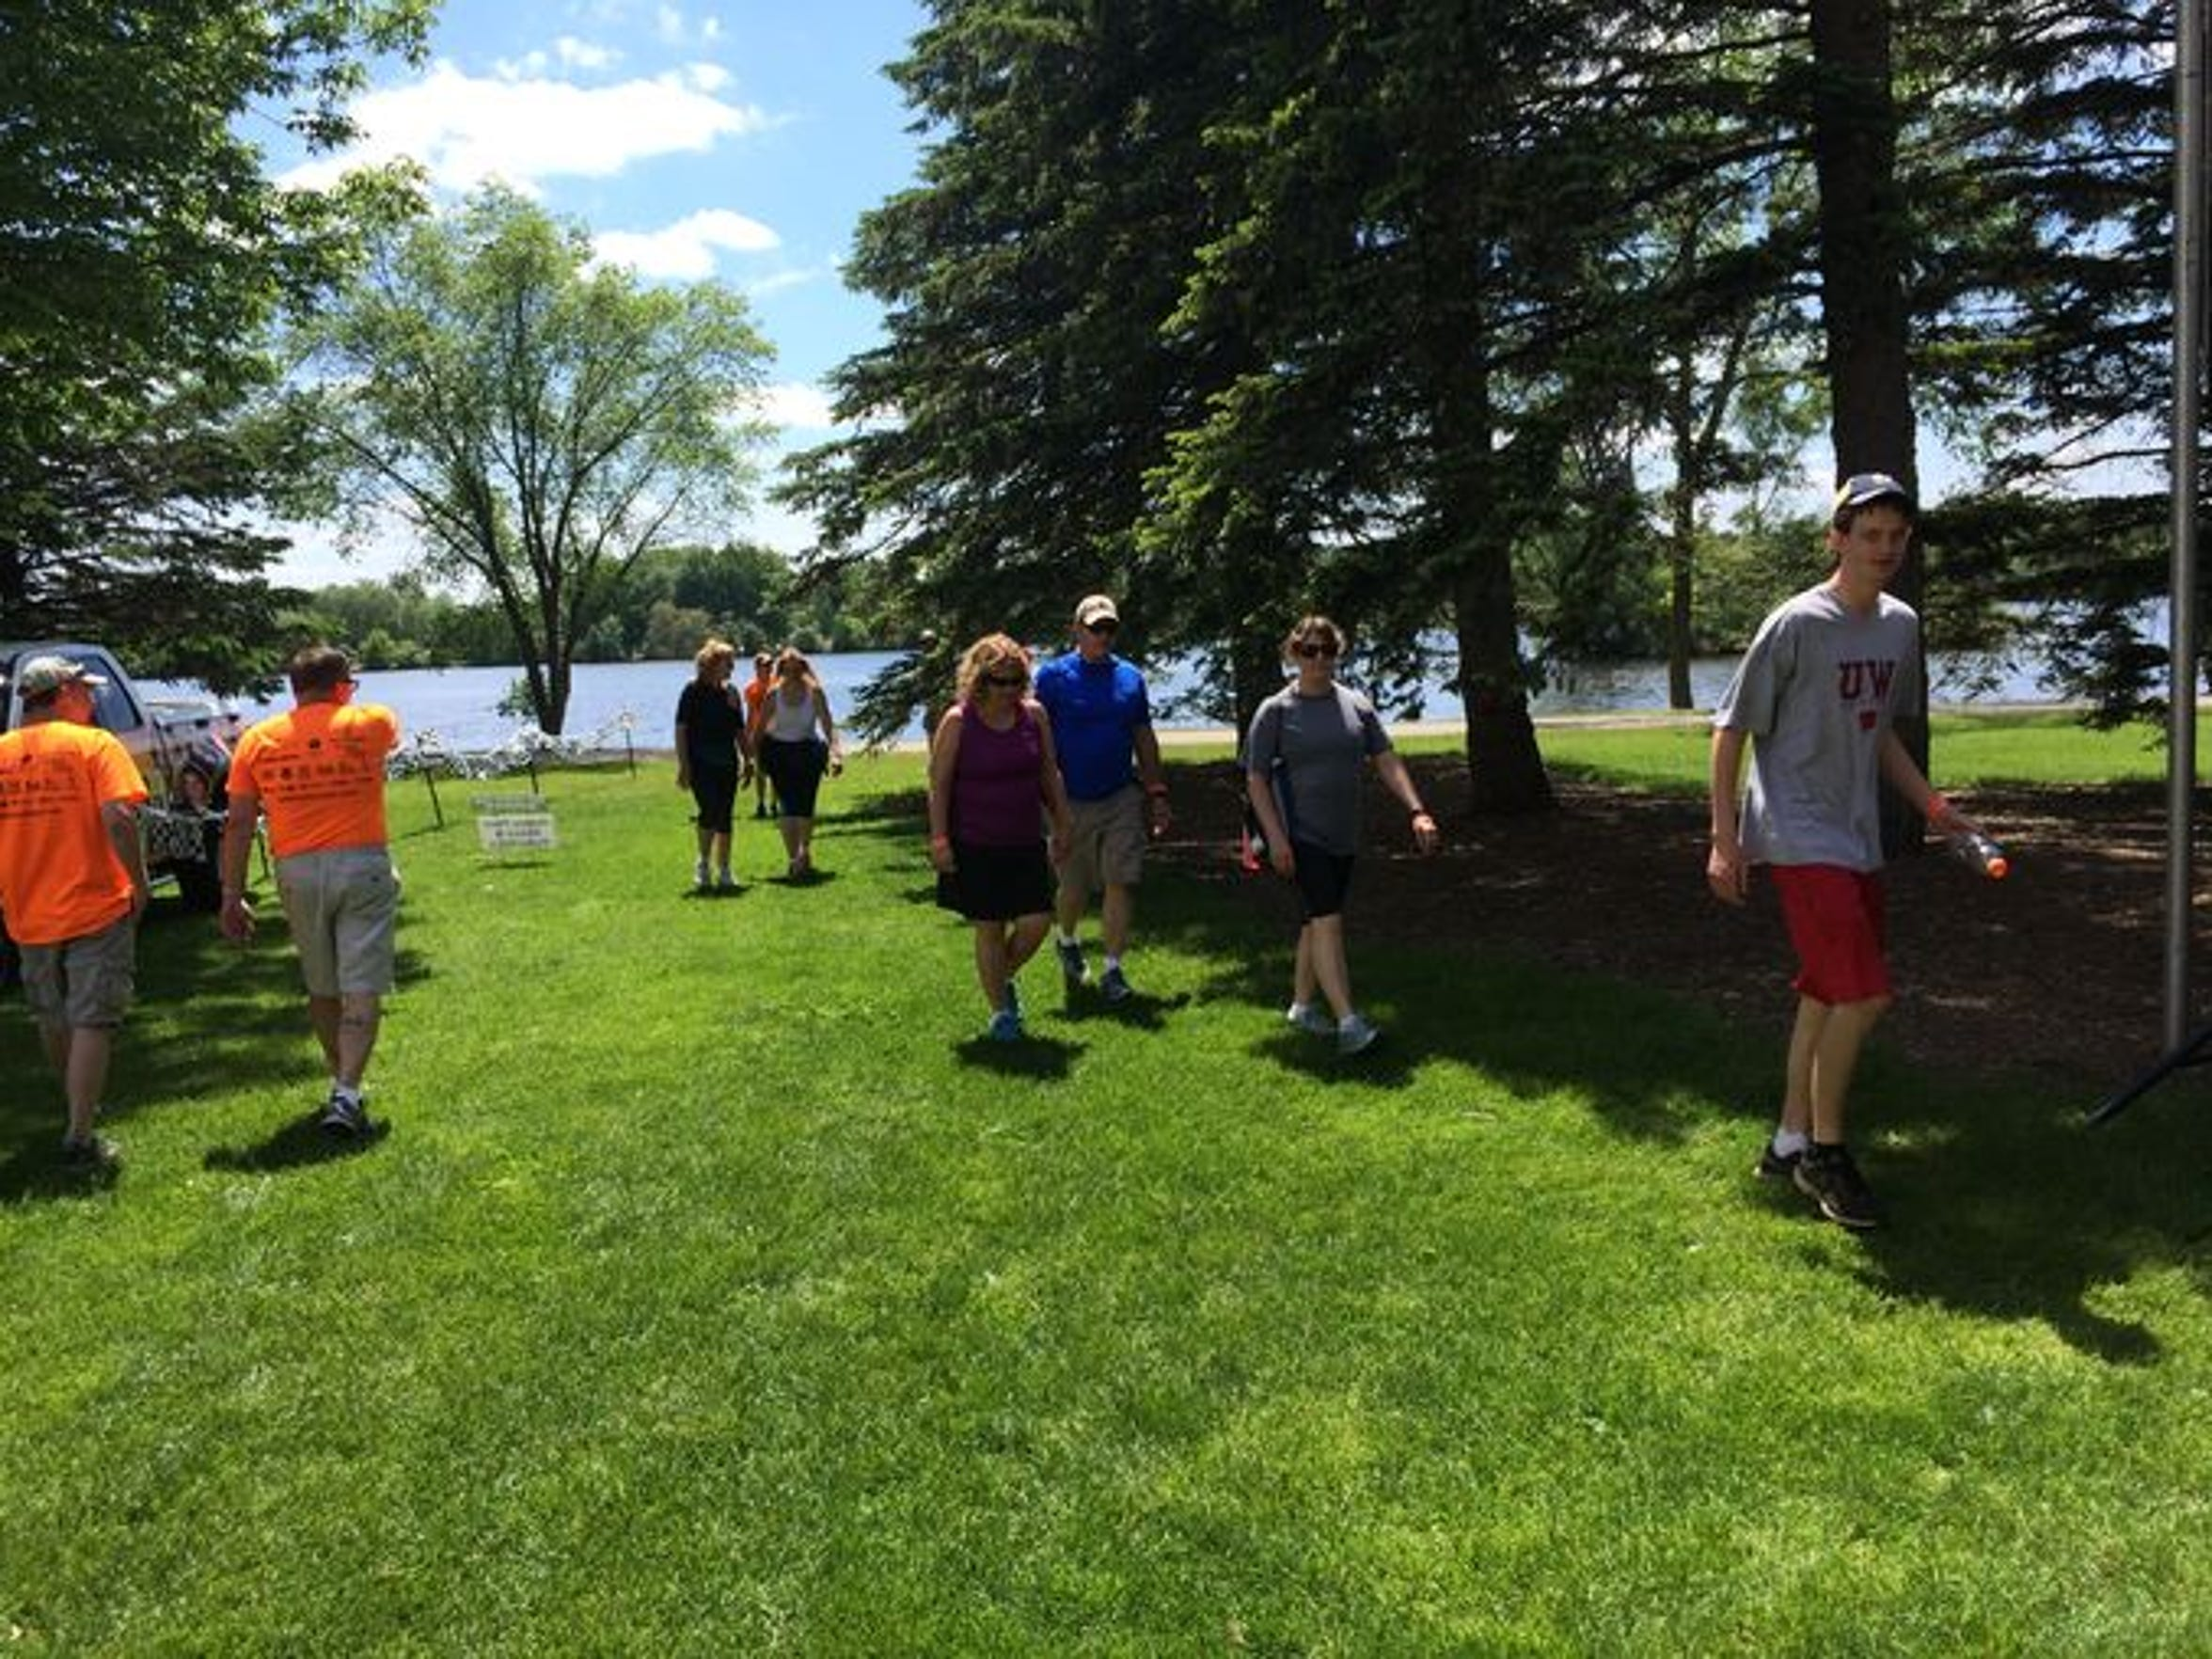 The 12 annual Walk Wisconsin will take place on June